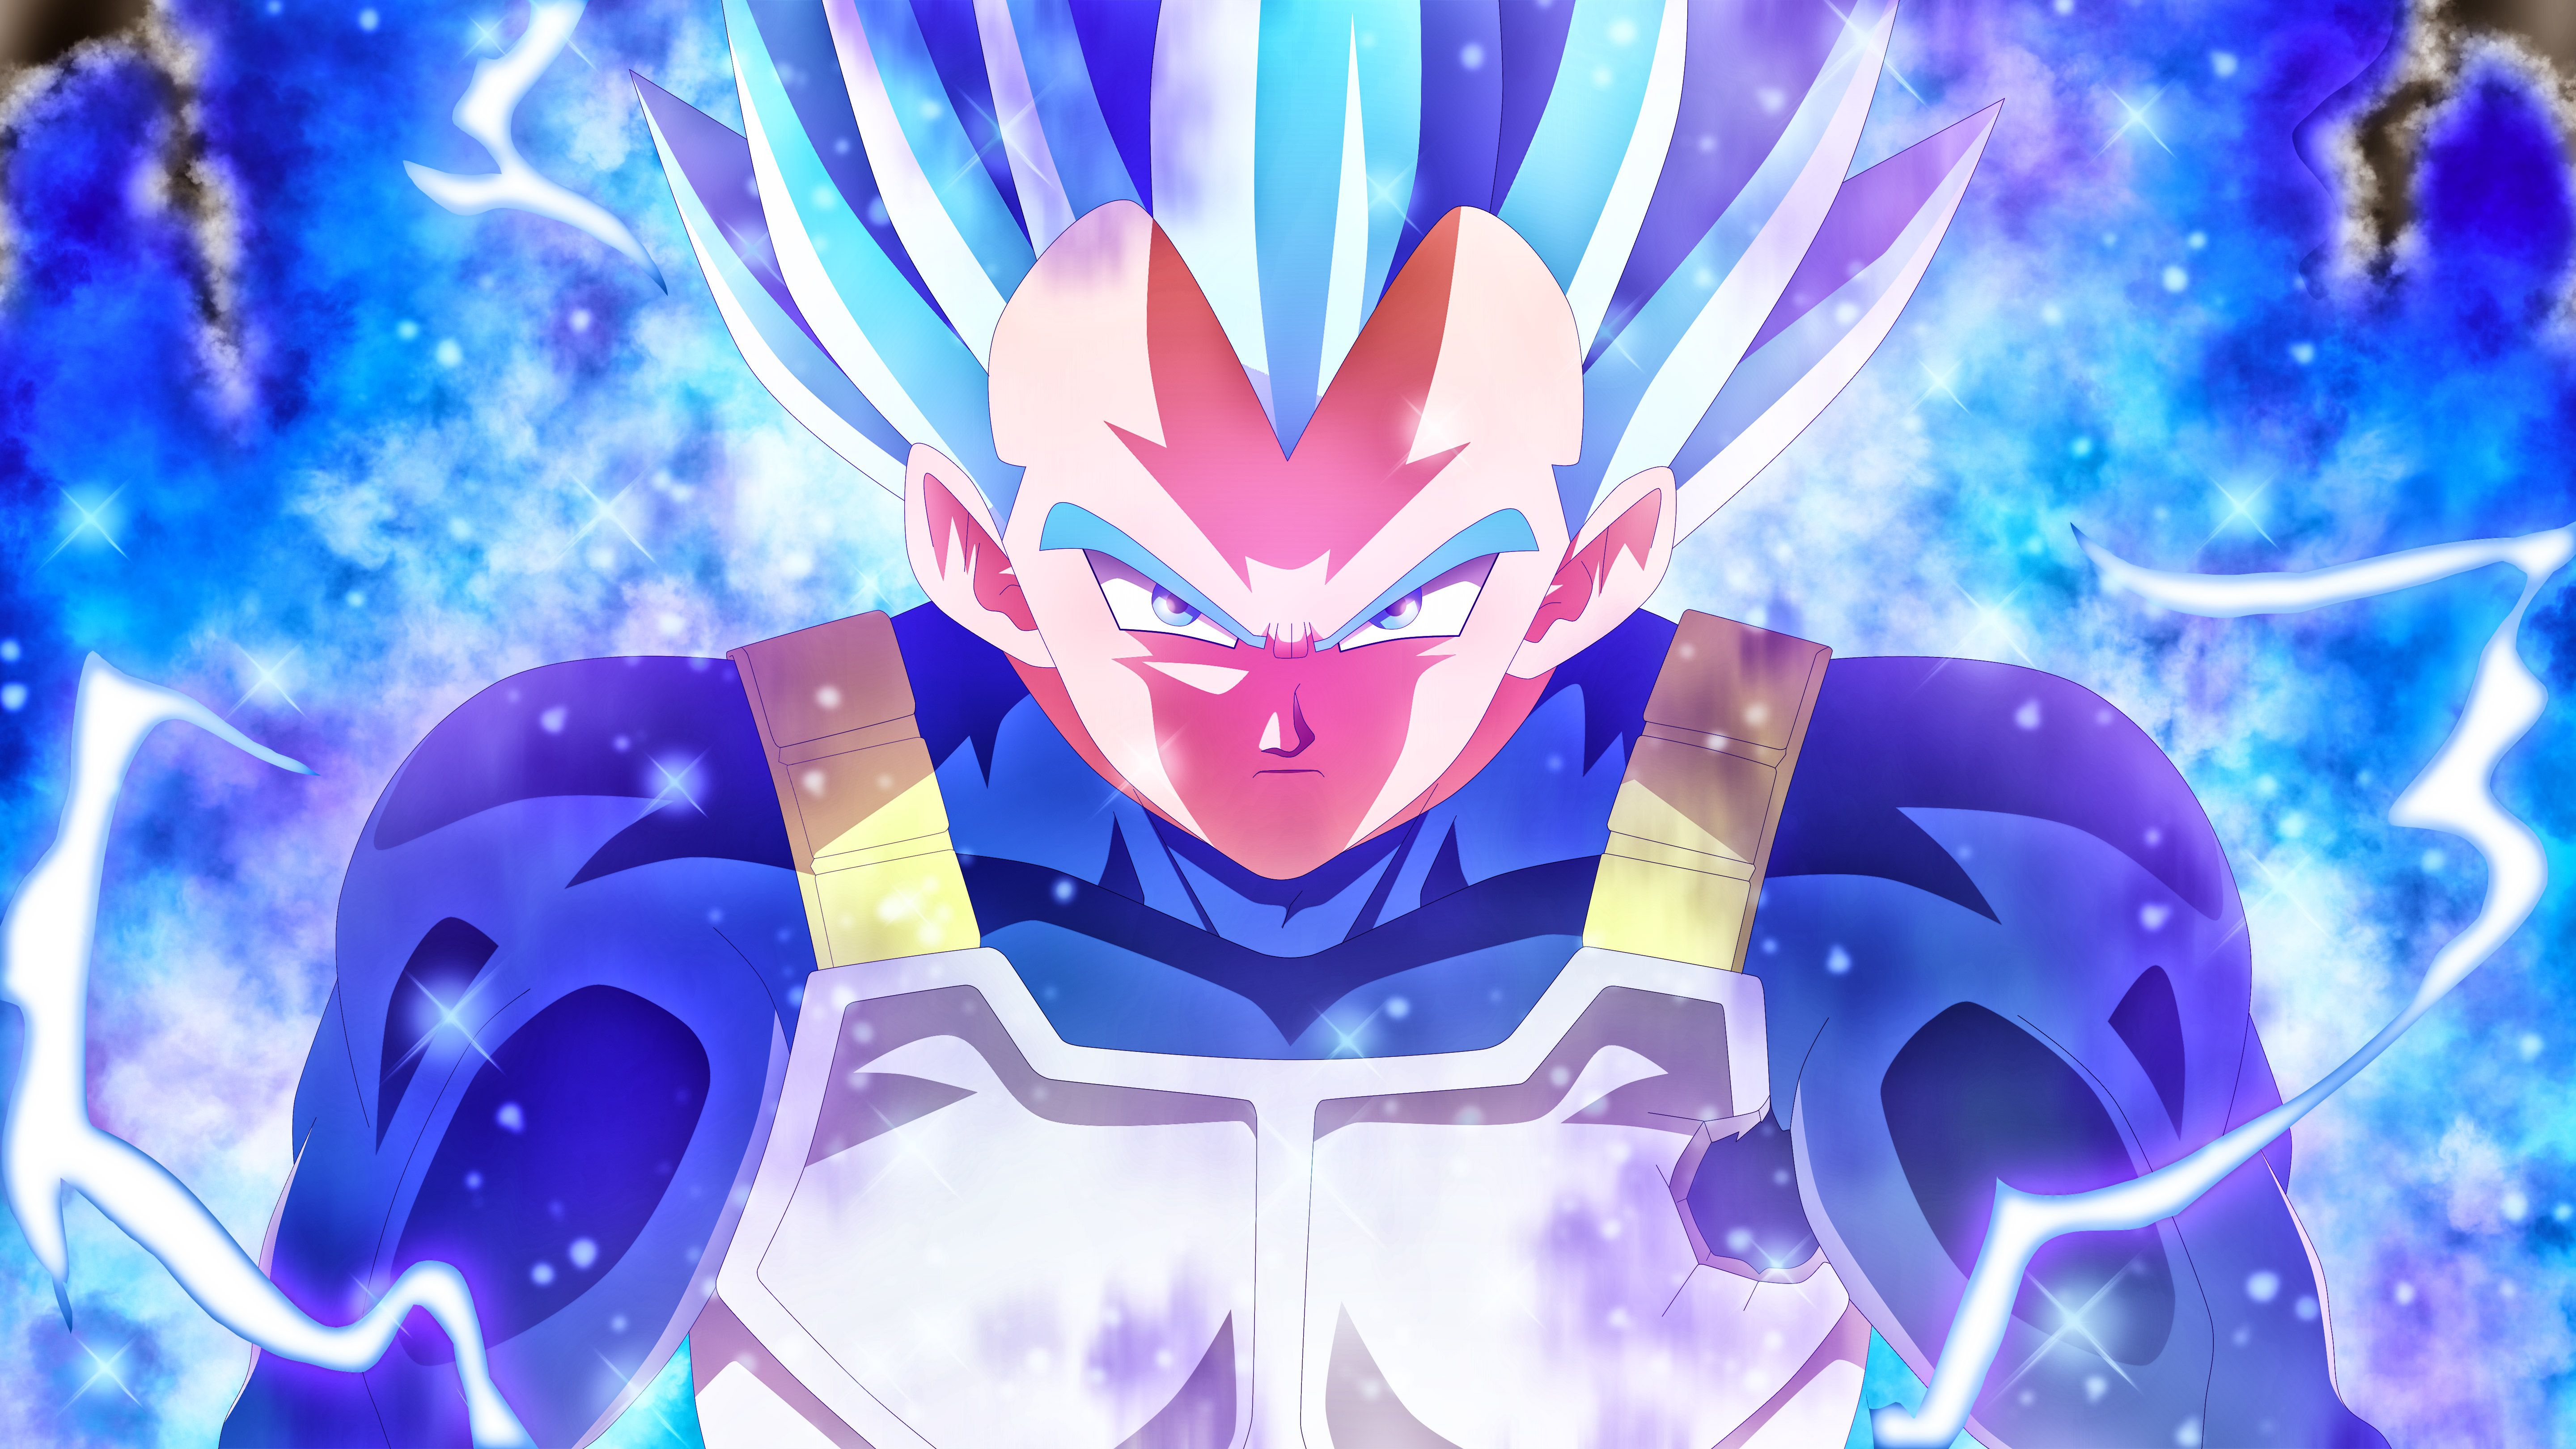 Vegeta Blue 5k Anime, HD Anime, 4k Wallpapers, Image, Backgrounds